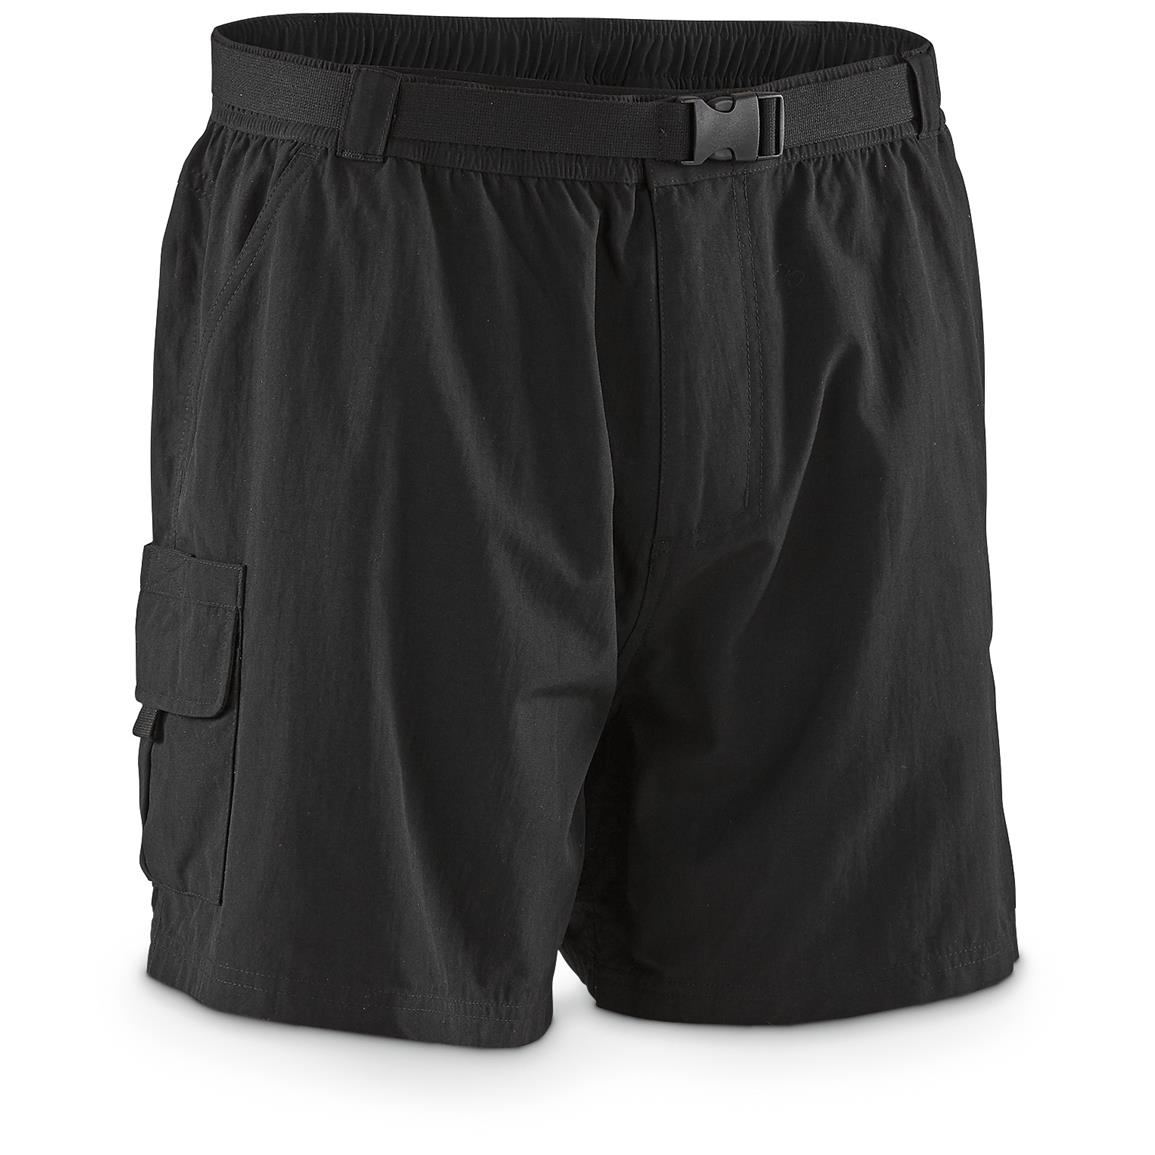 "Guide Gear Men's Cargo River Shorts, 6"" Inseam, Black"